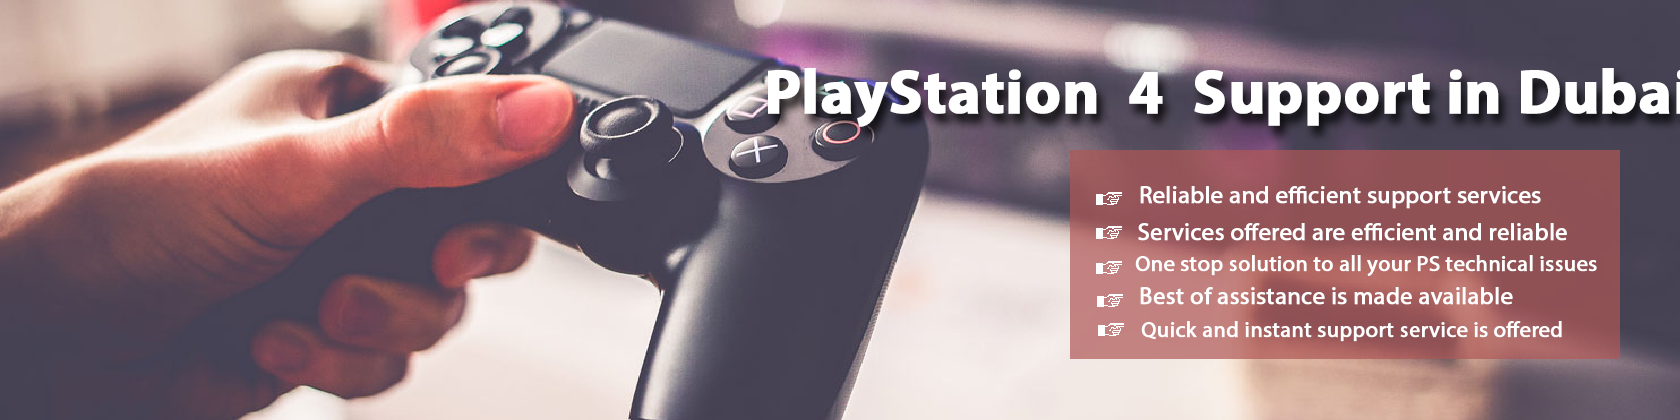 PlayStation 4 Technical Service Support in Dubai